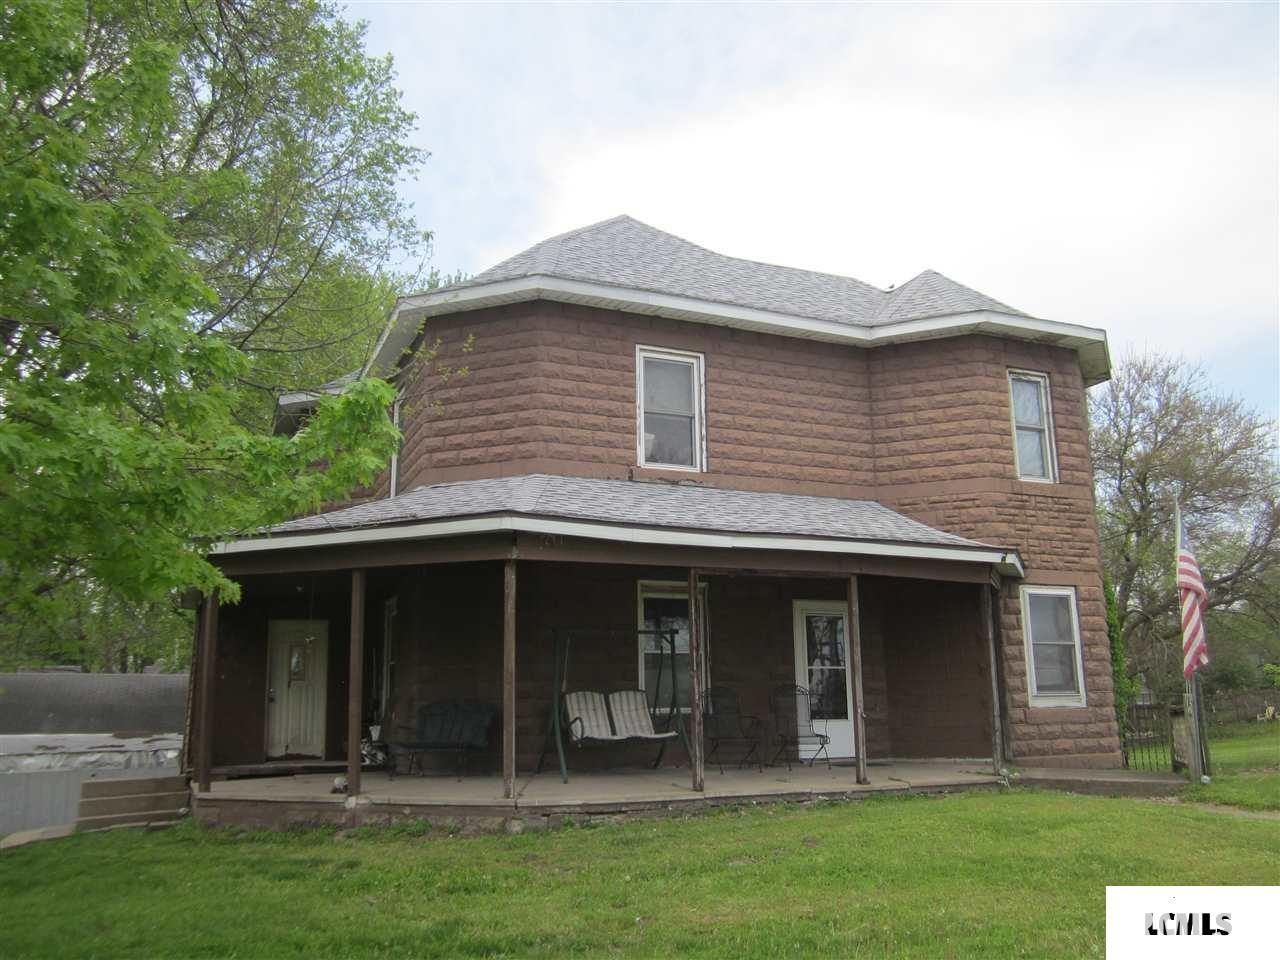 105 S MAIN Property Photo - Forest City, IL real estate listing